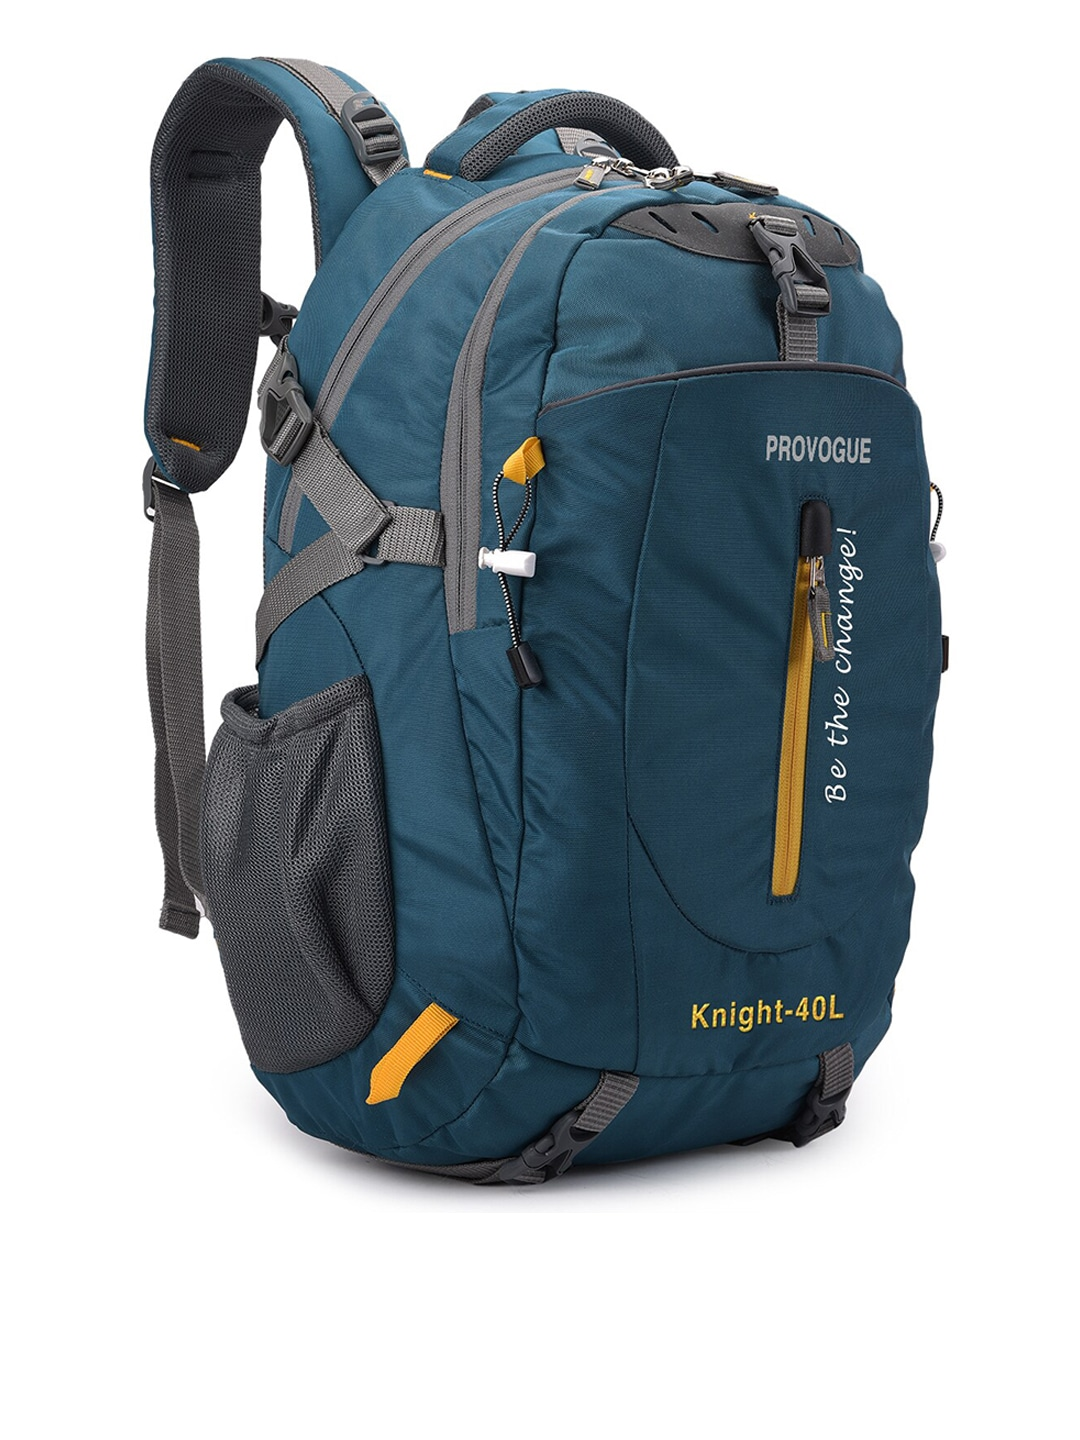 Girlistan - Tips for Backpacking - Essential Equipment and Essentials Checklist